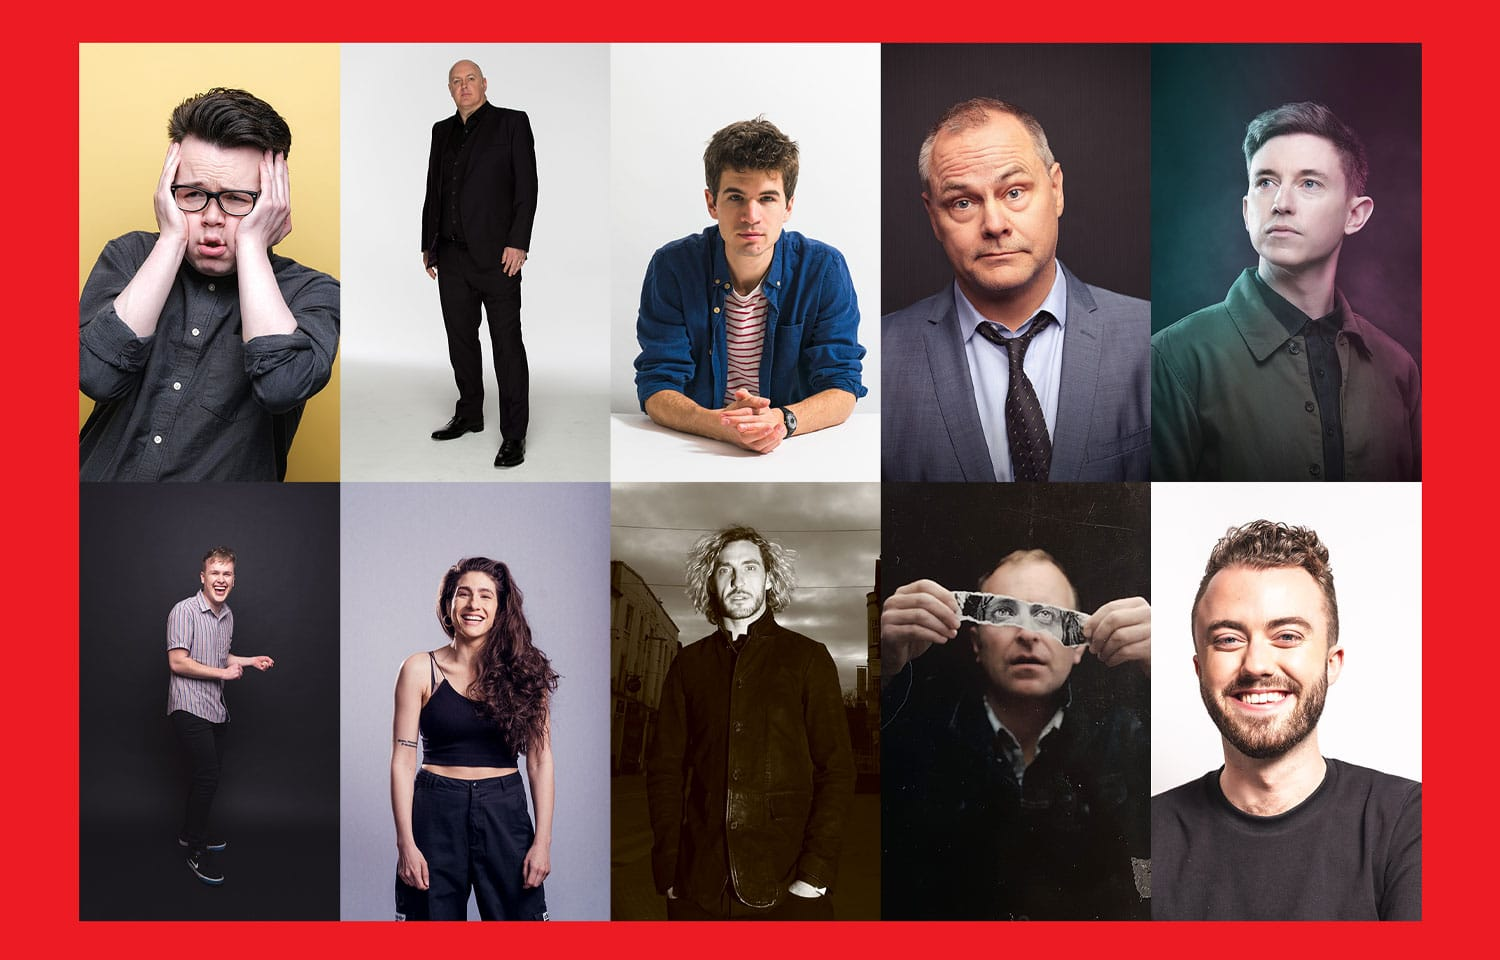 OFF THE KERB'S EDINBURGH FRINGE SHOWS ARE NOW ON SALE